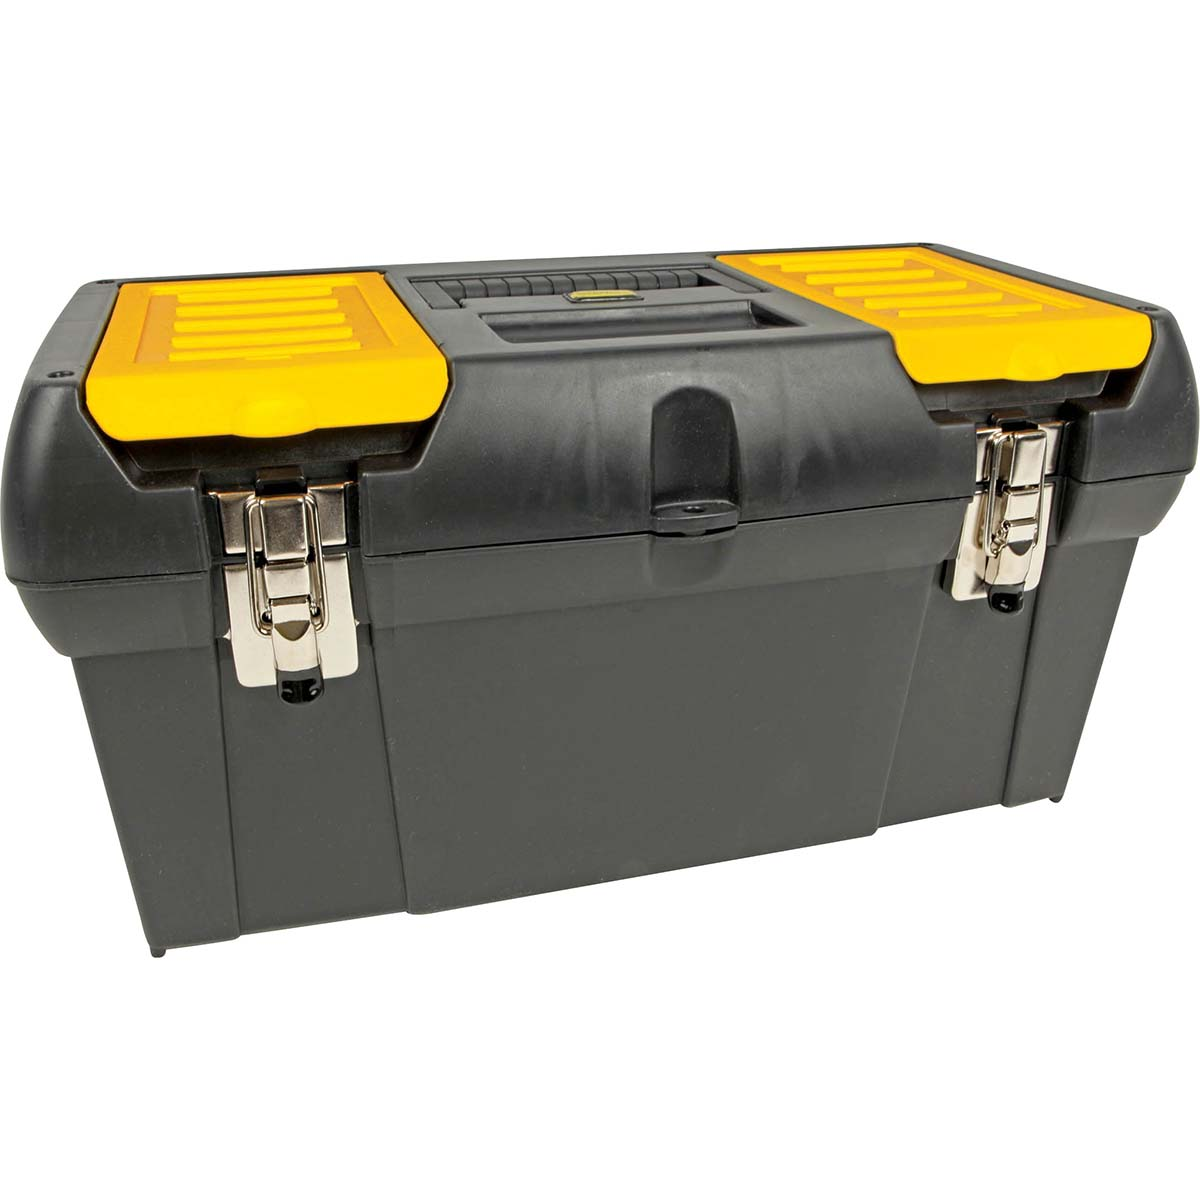 STANLEY SERIES 2000 METAL LATCH TOOL BOX W/ TOTE TRAY - 19""